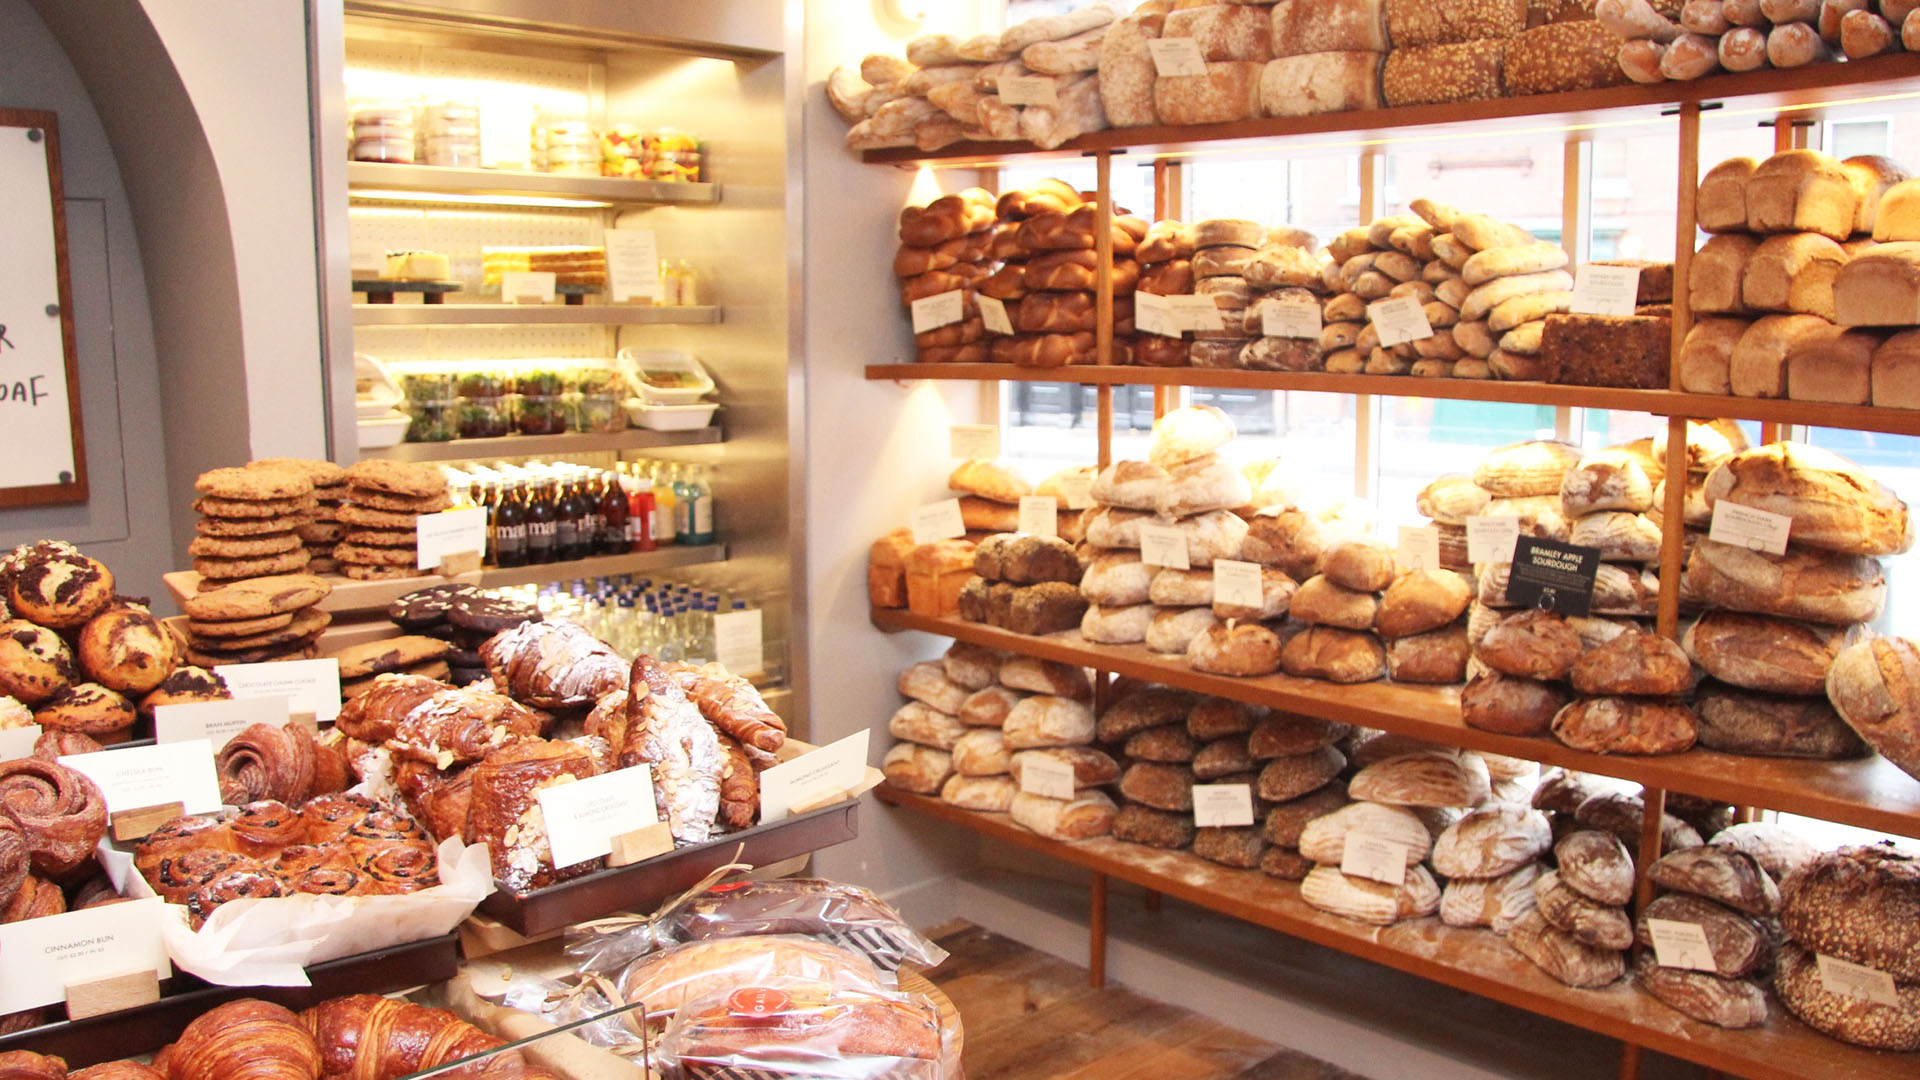 Bakery filled with freshly baked loaves on brown shelves and a counter with croissants and sweet treats.